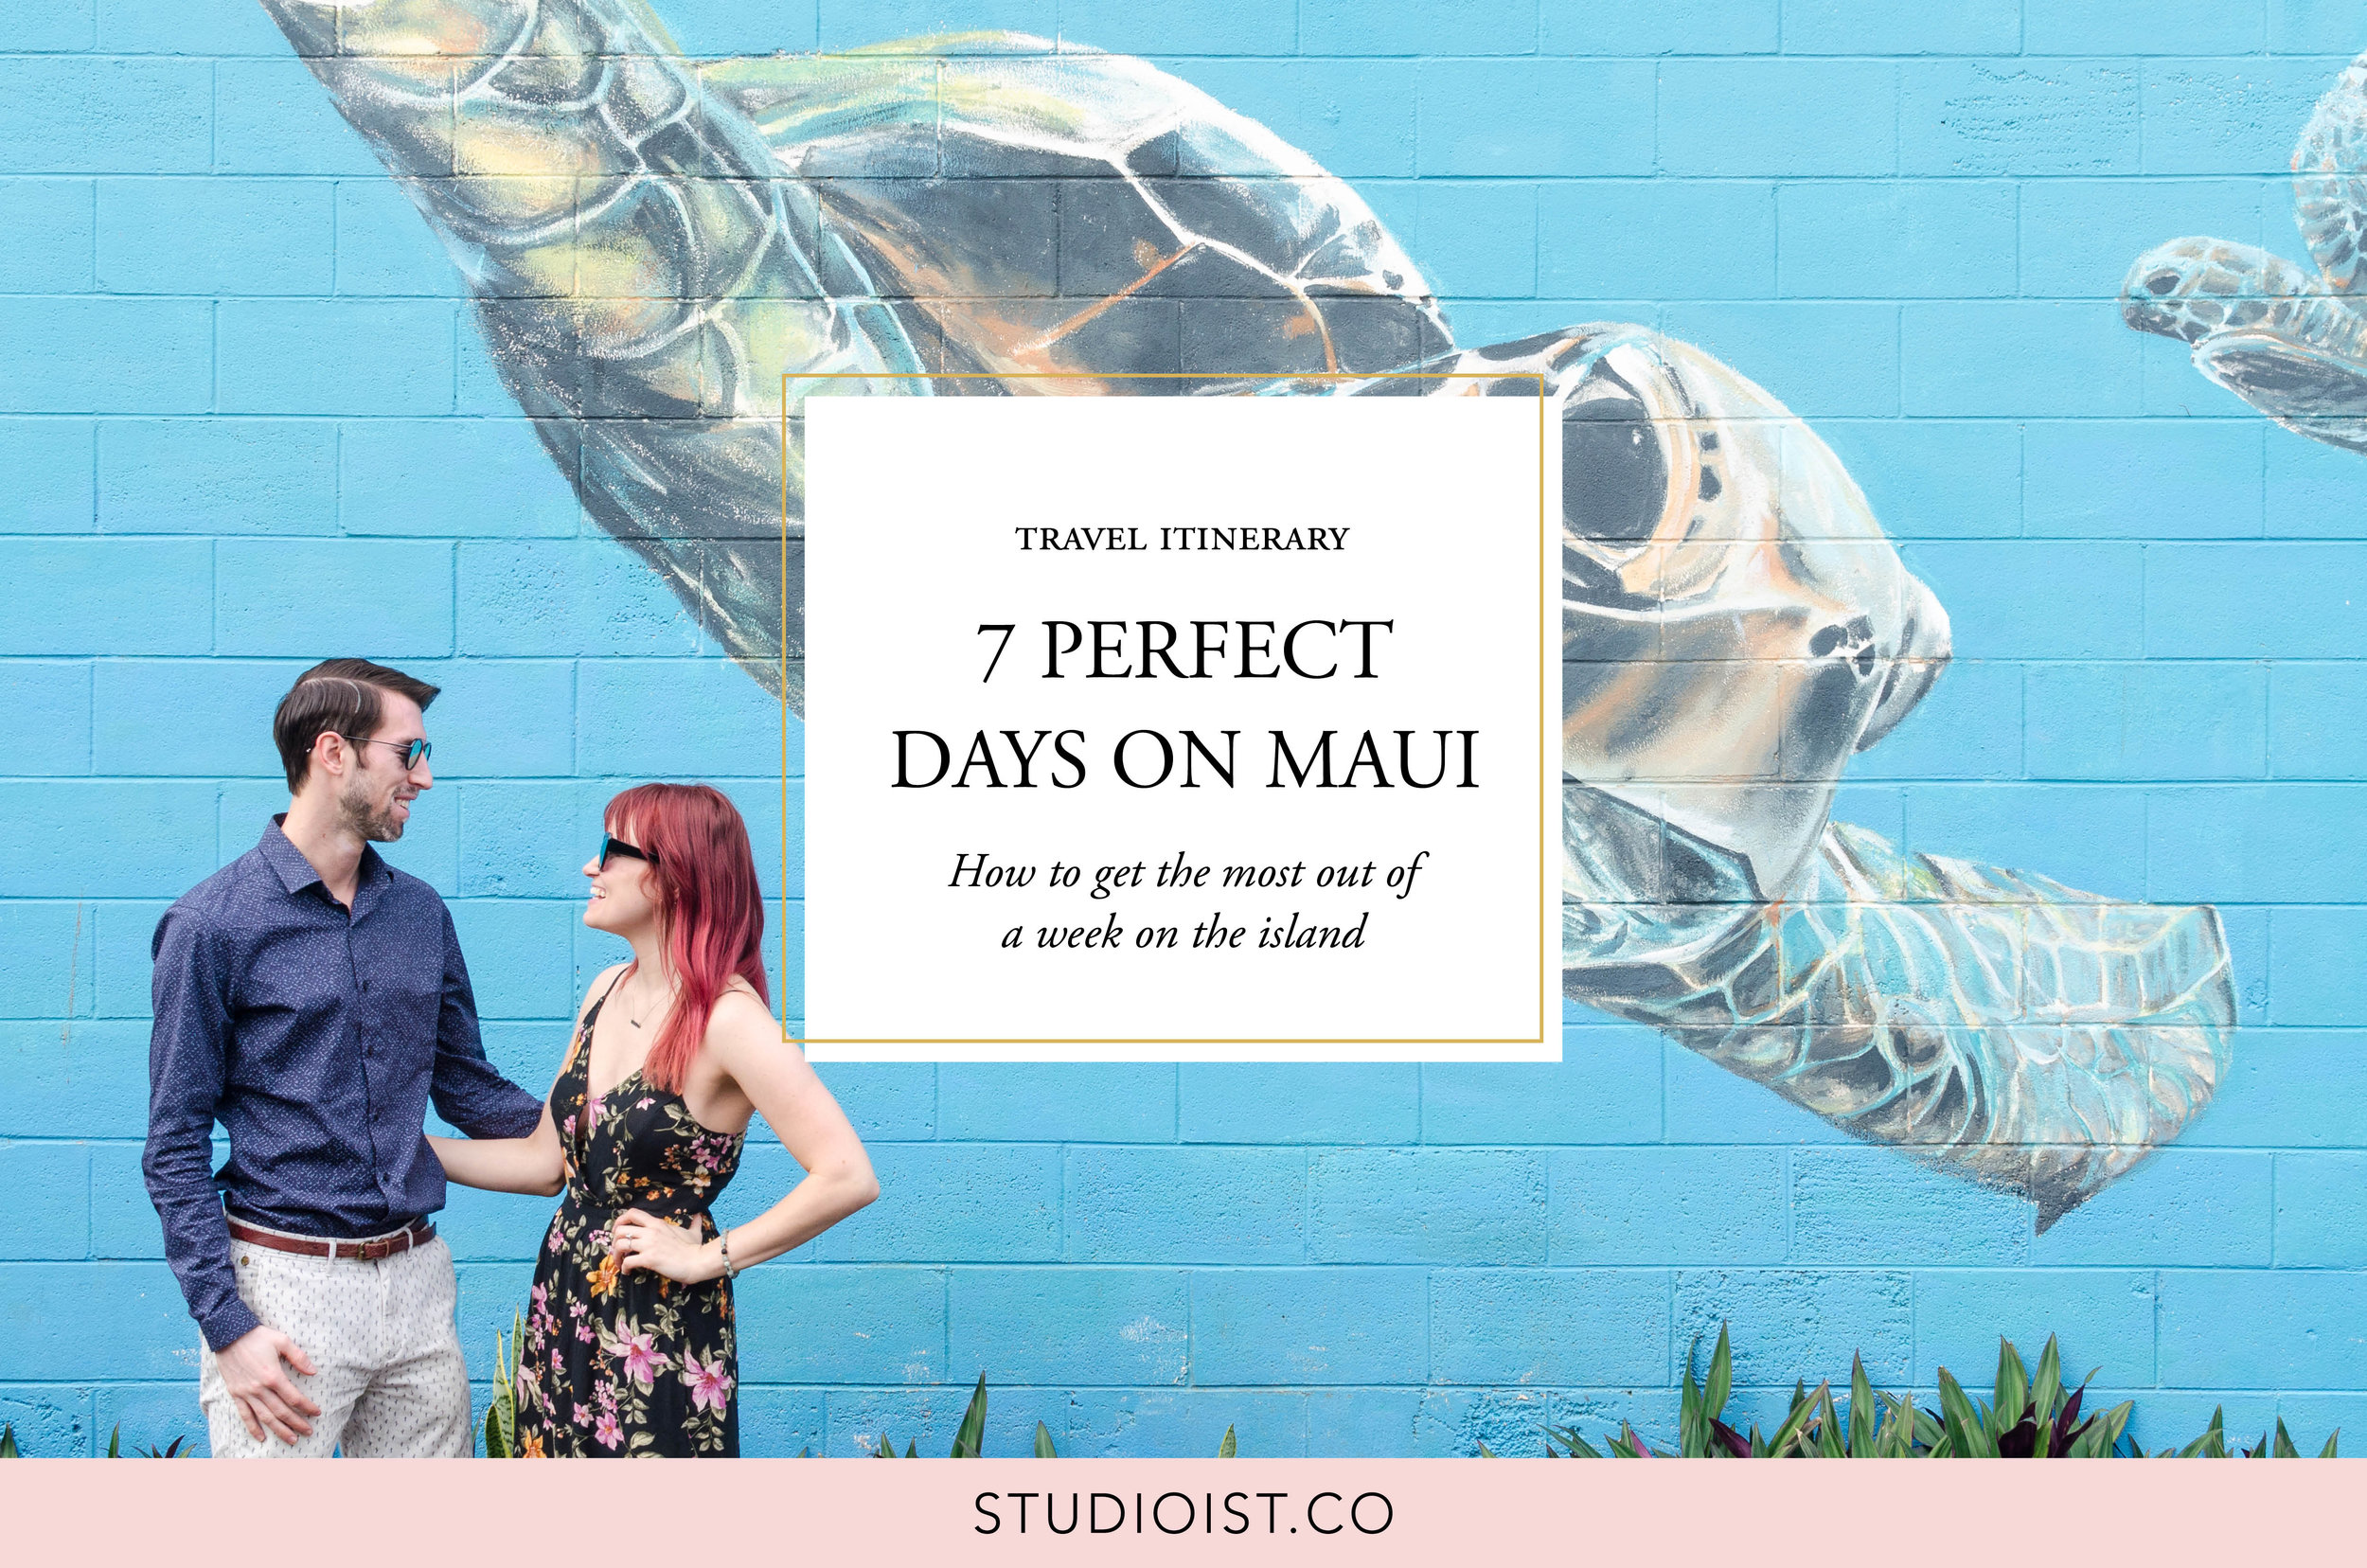 Studioist_Travel Cover Photos_Maui Itinerary.jpg